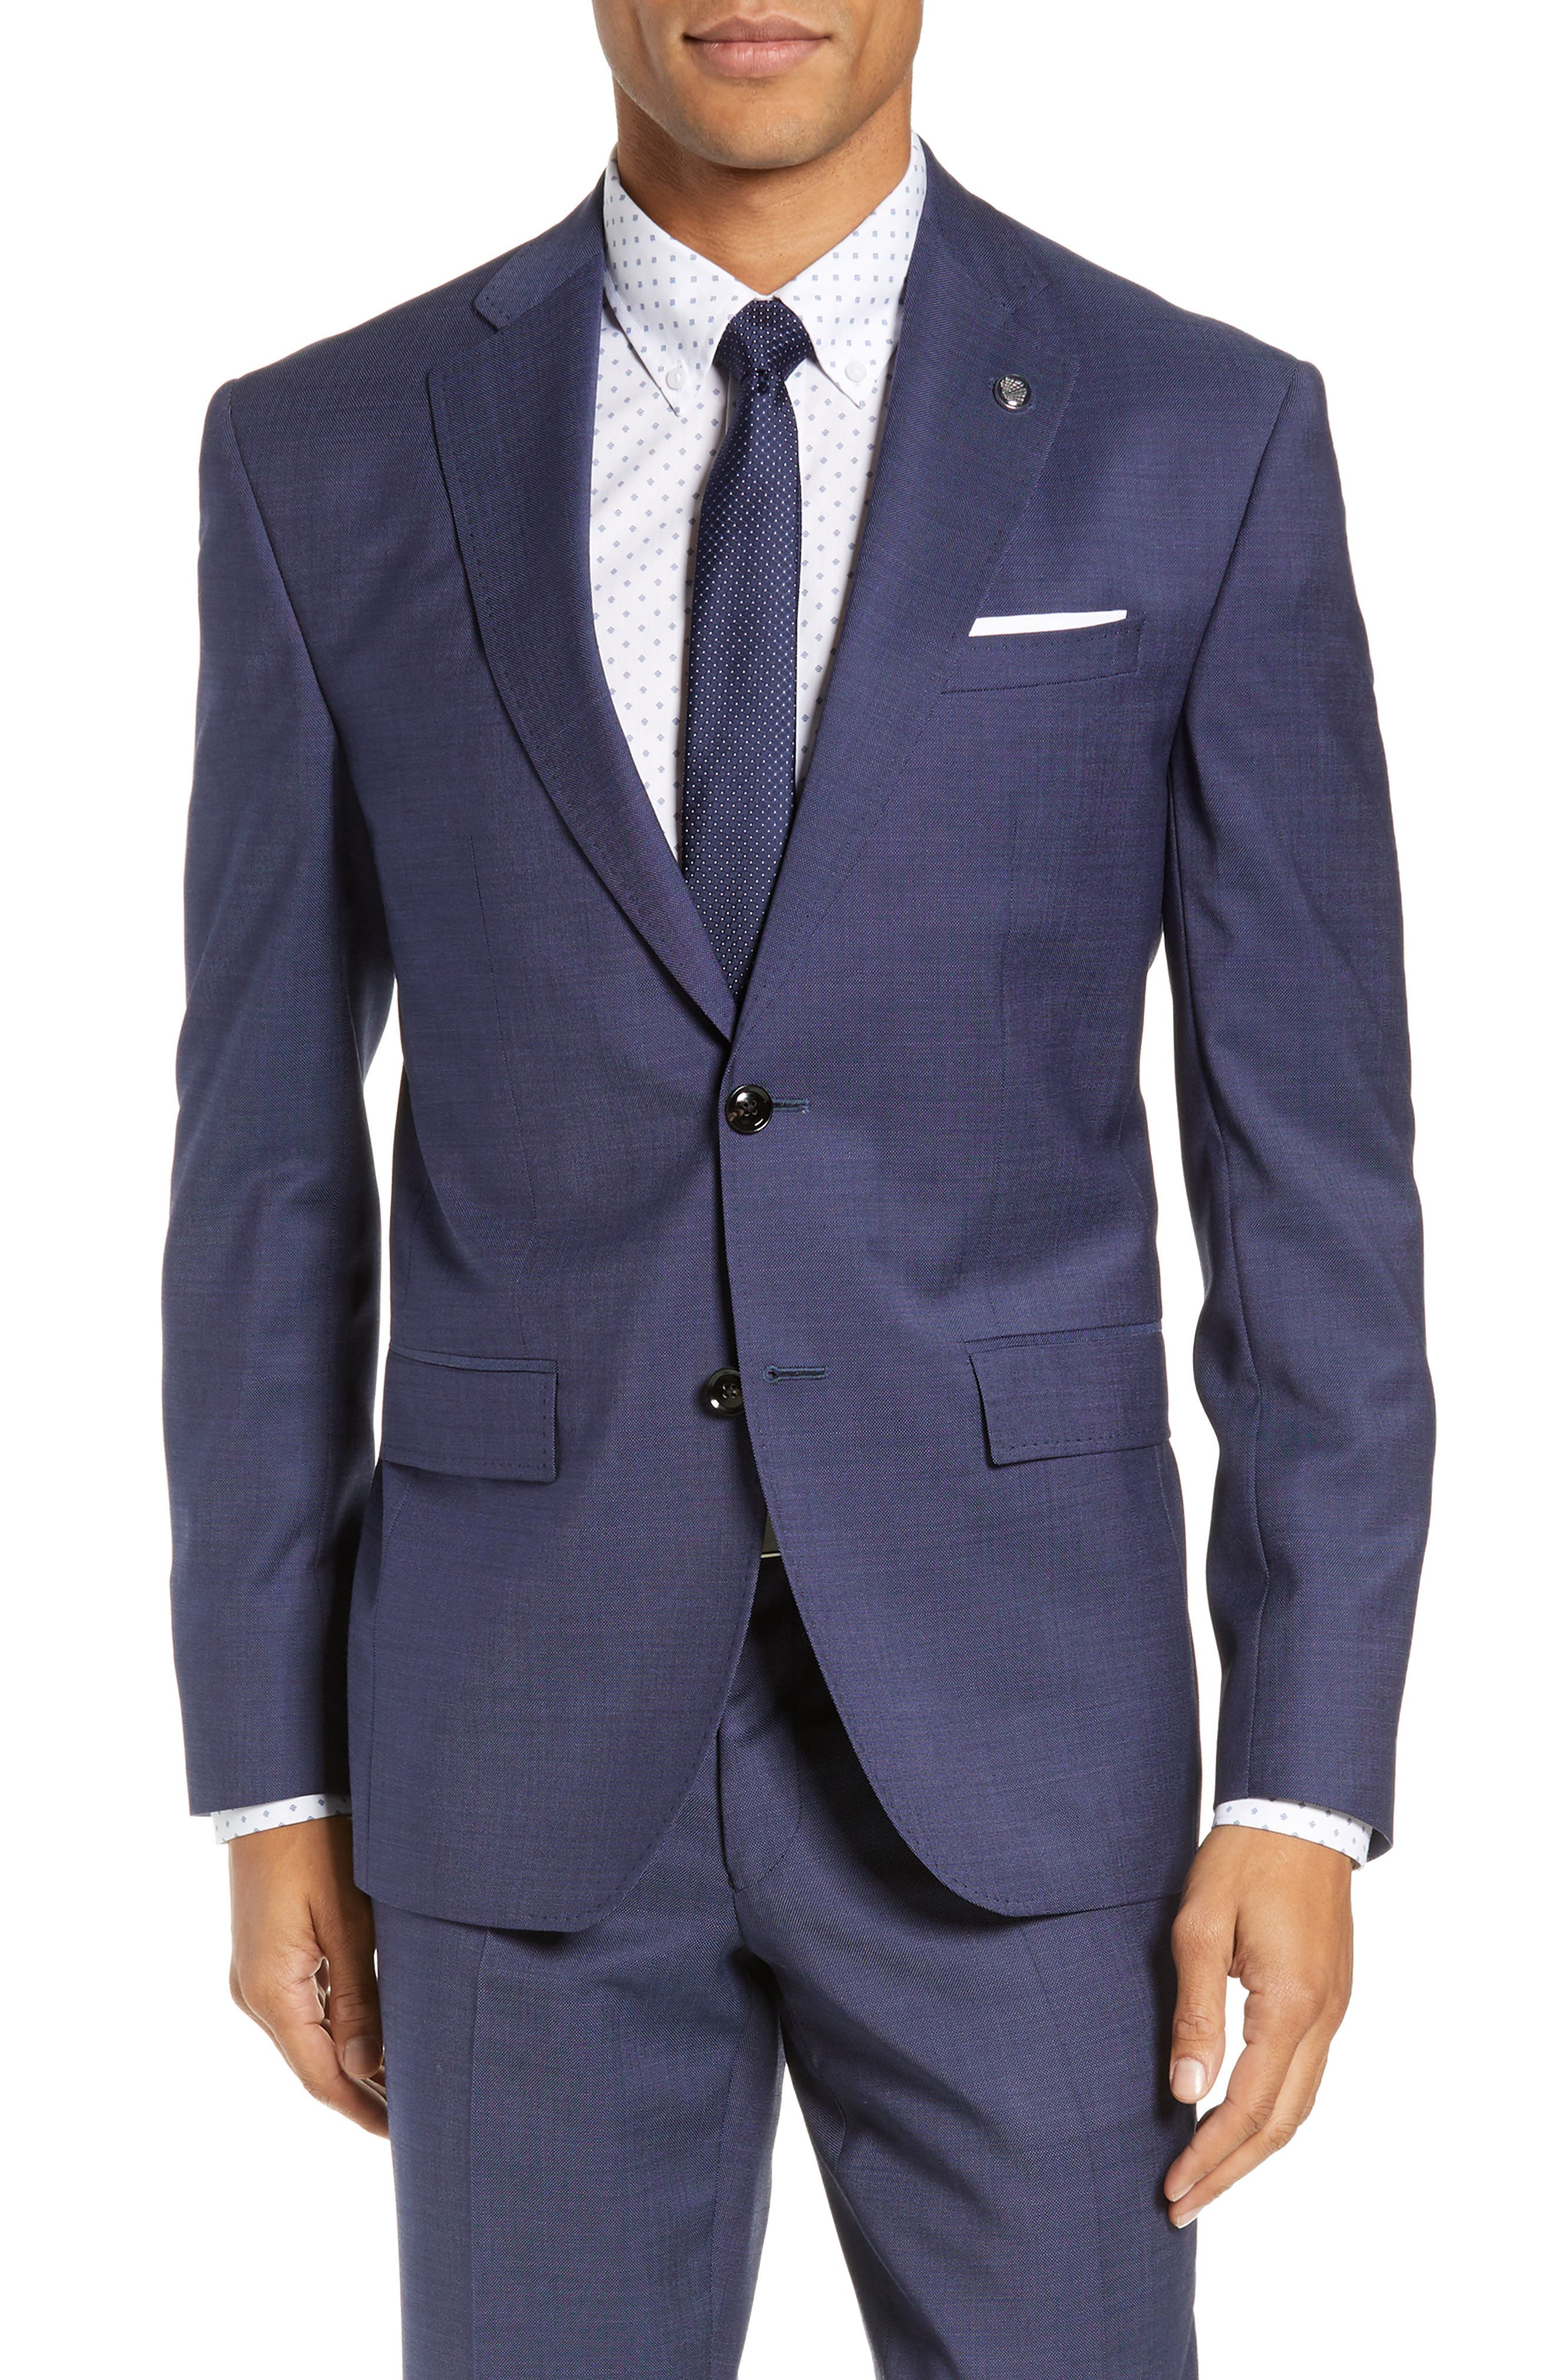 TED BAKER LONDON, Roger Slim Fit Solid Wool Suit, Alternate thumbnail 5, color, BLUE